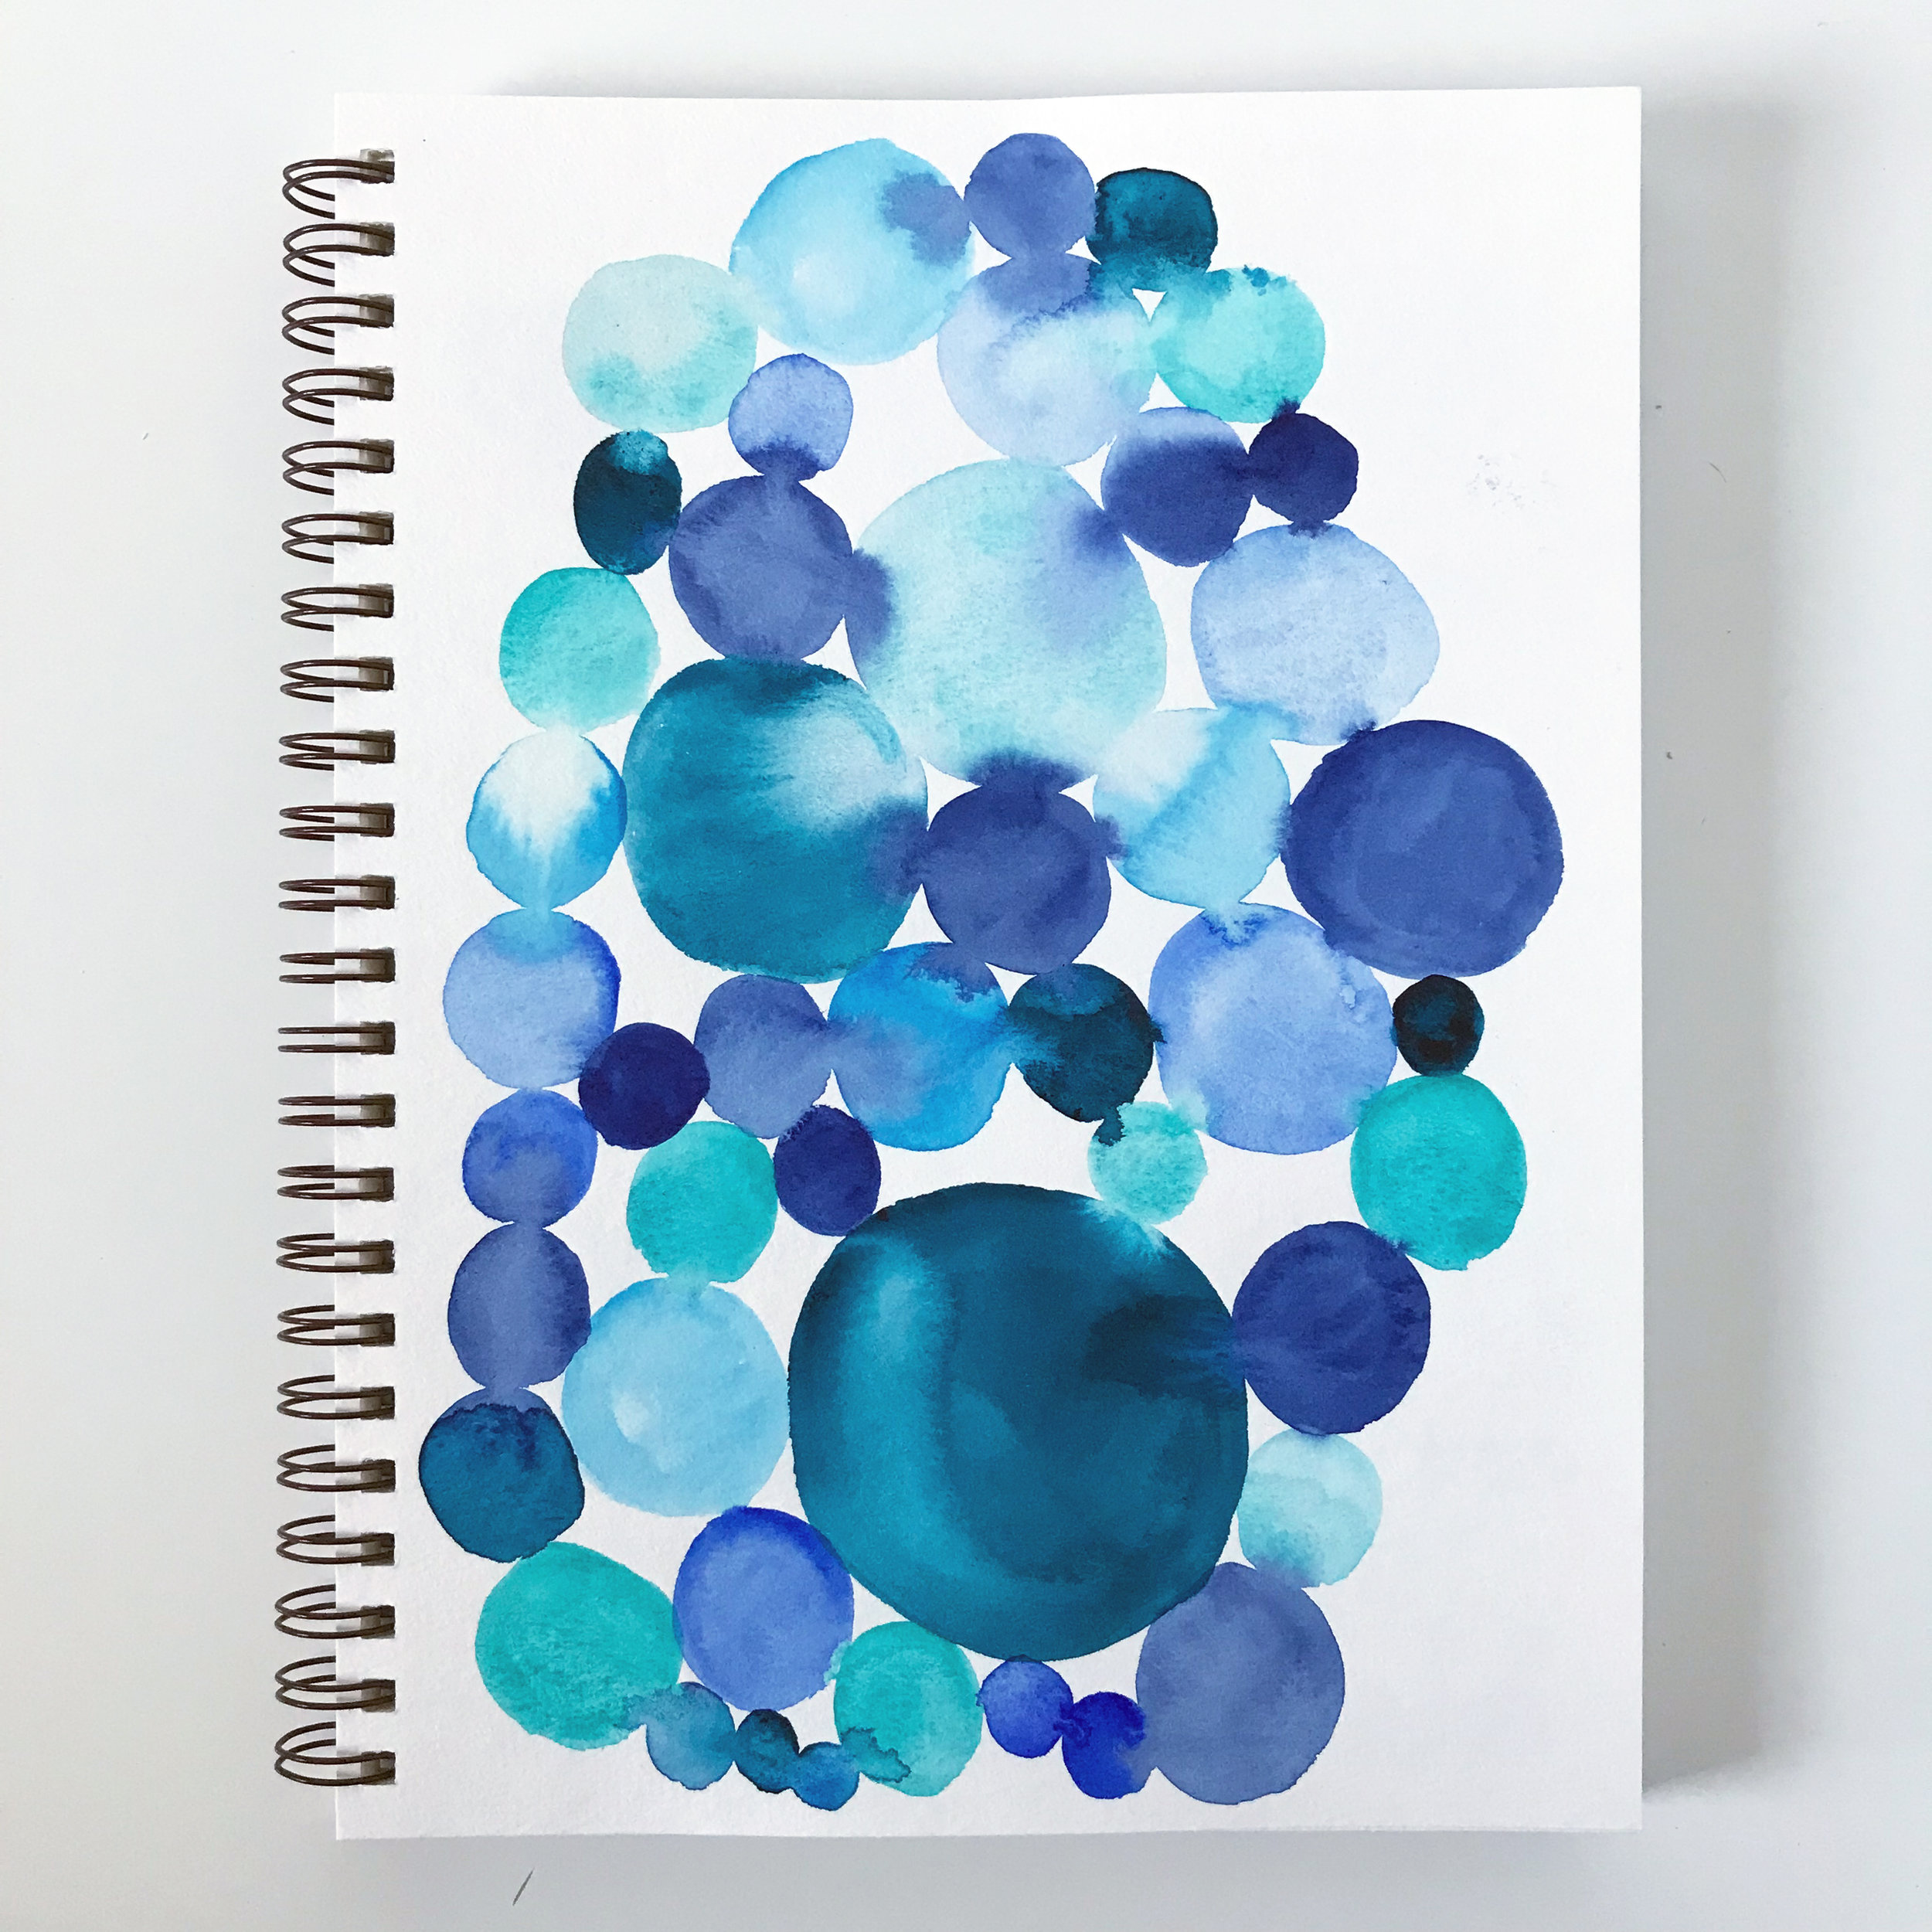 Blue Watercolor Color Play In My Color Themed Sketchbook by Anne Butera of My Giant Strawberry